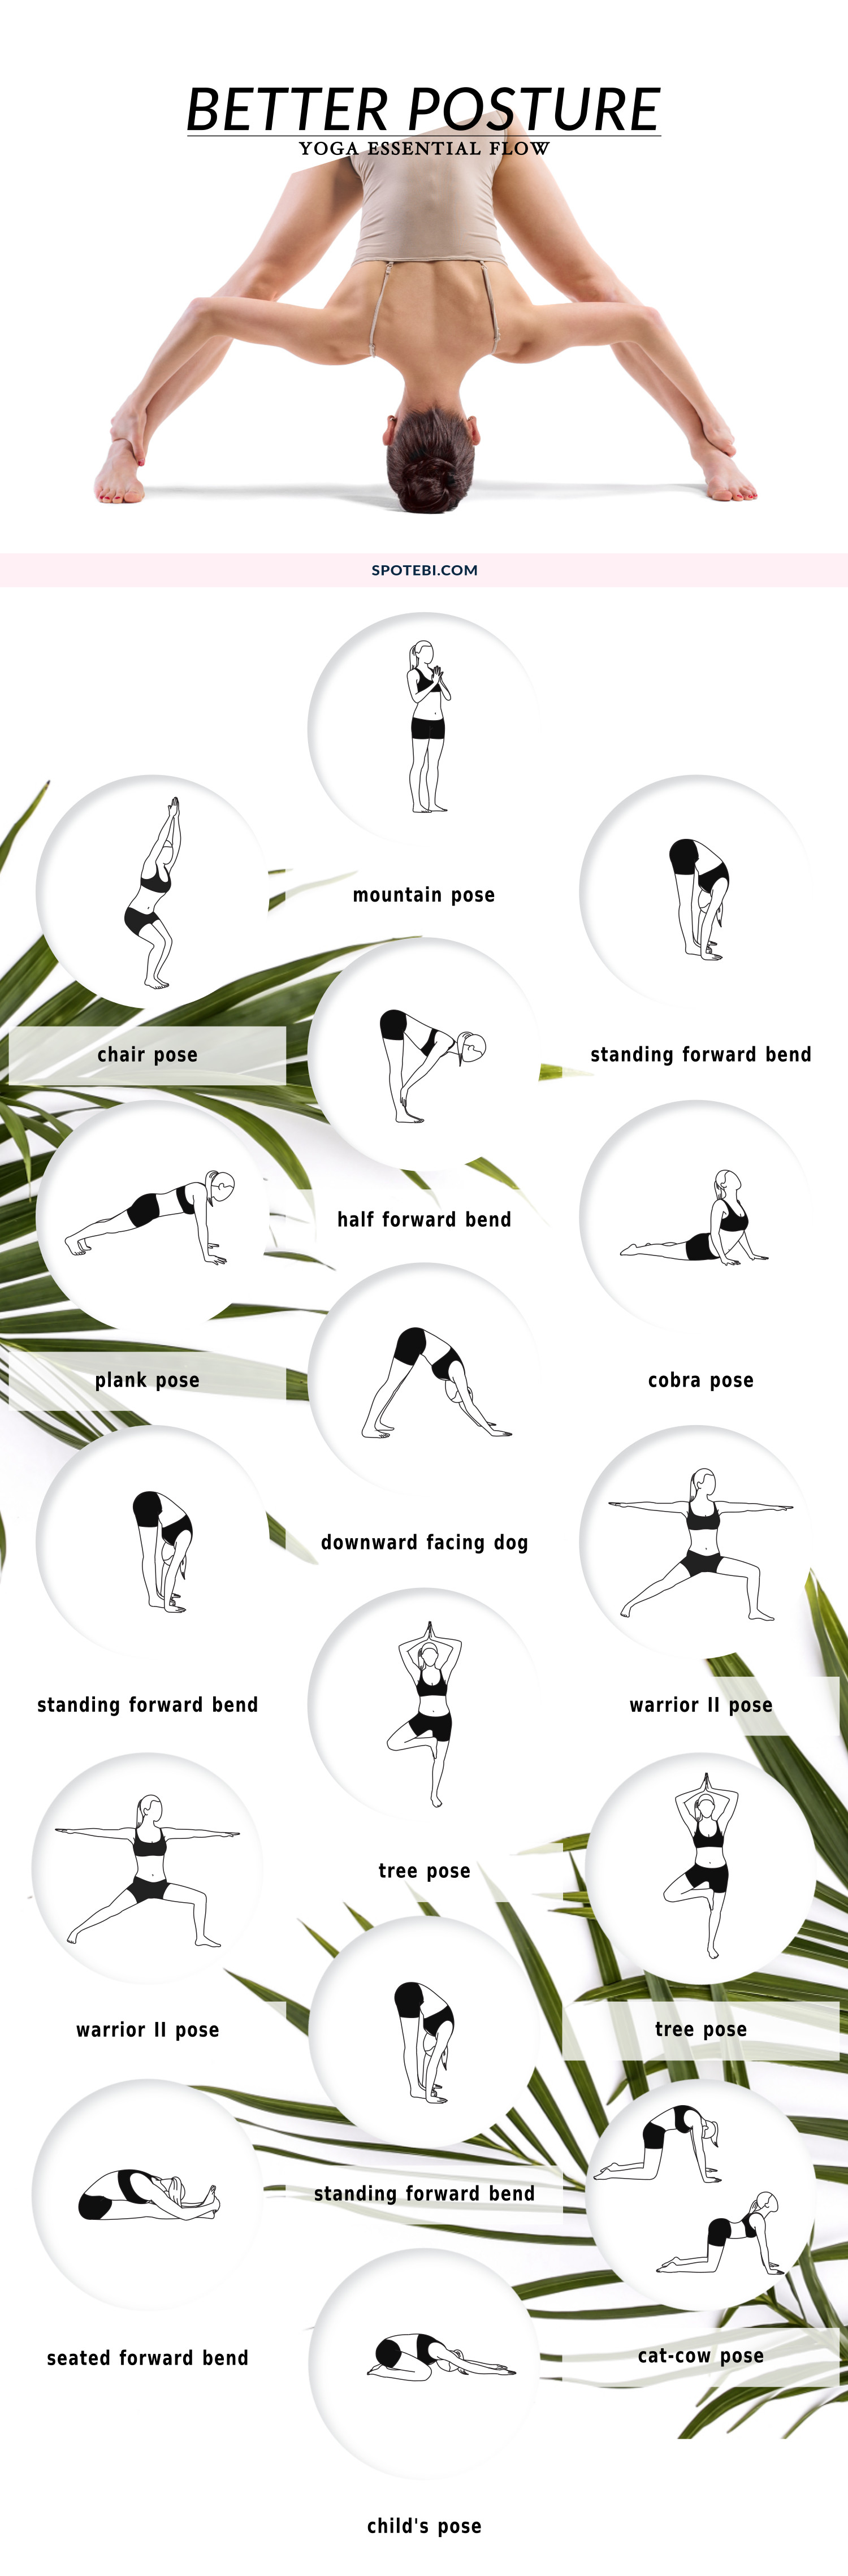 Try these yoga corrective poses to strengthen and stretch your back muscles and improve spinal alignment! This 10-minute yoga flow is designed to help you stand tall and become aware of your posture. https://www.spotebi.com/yoga-sequences/better-posture/